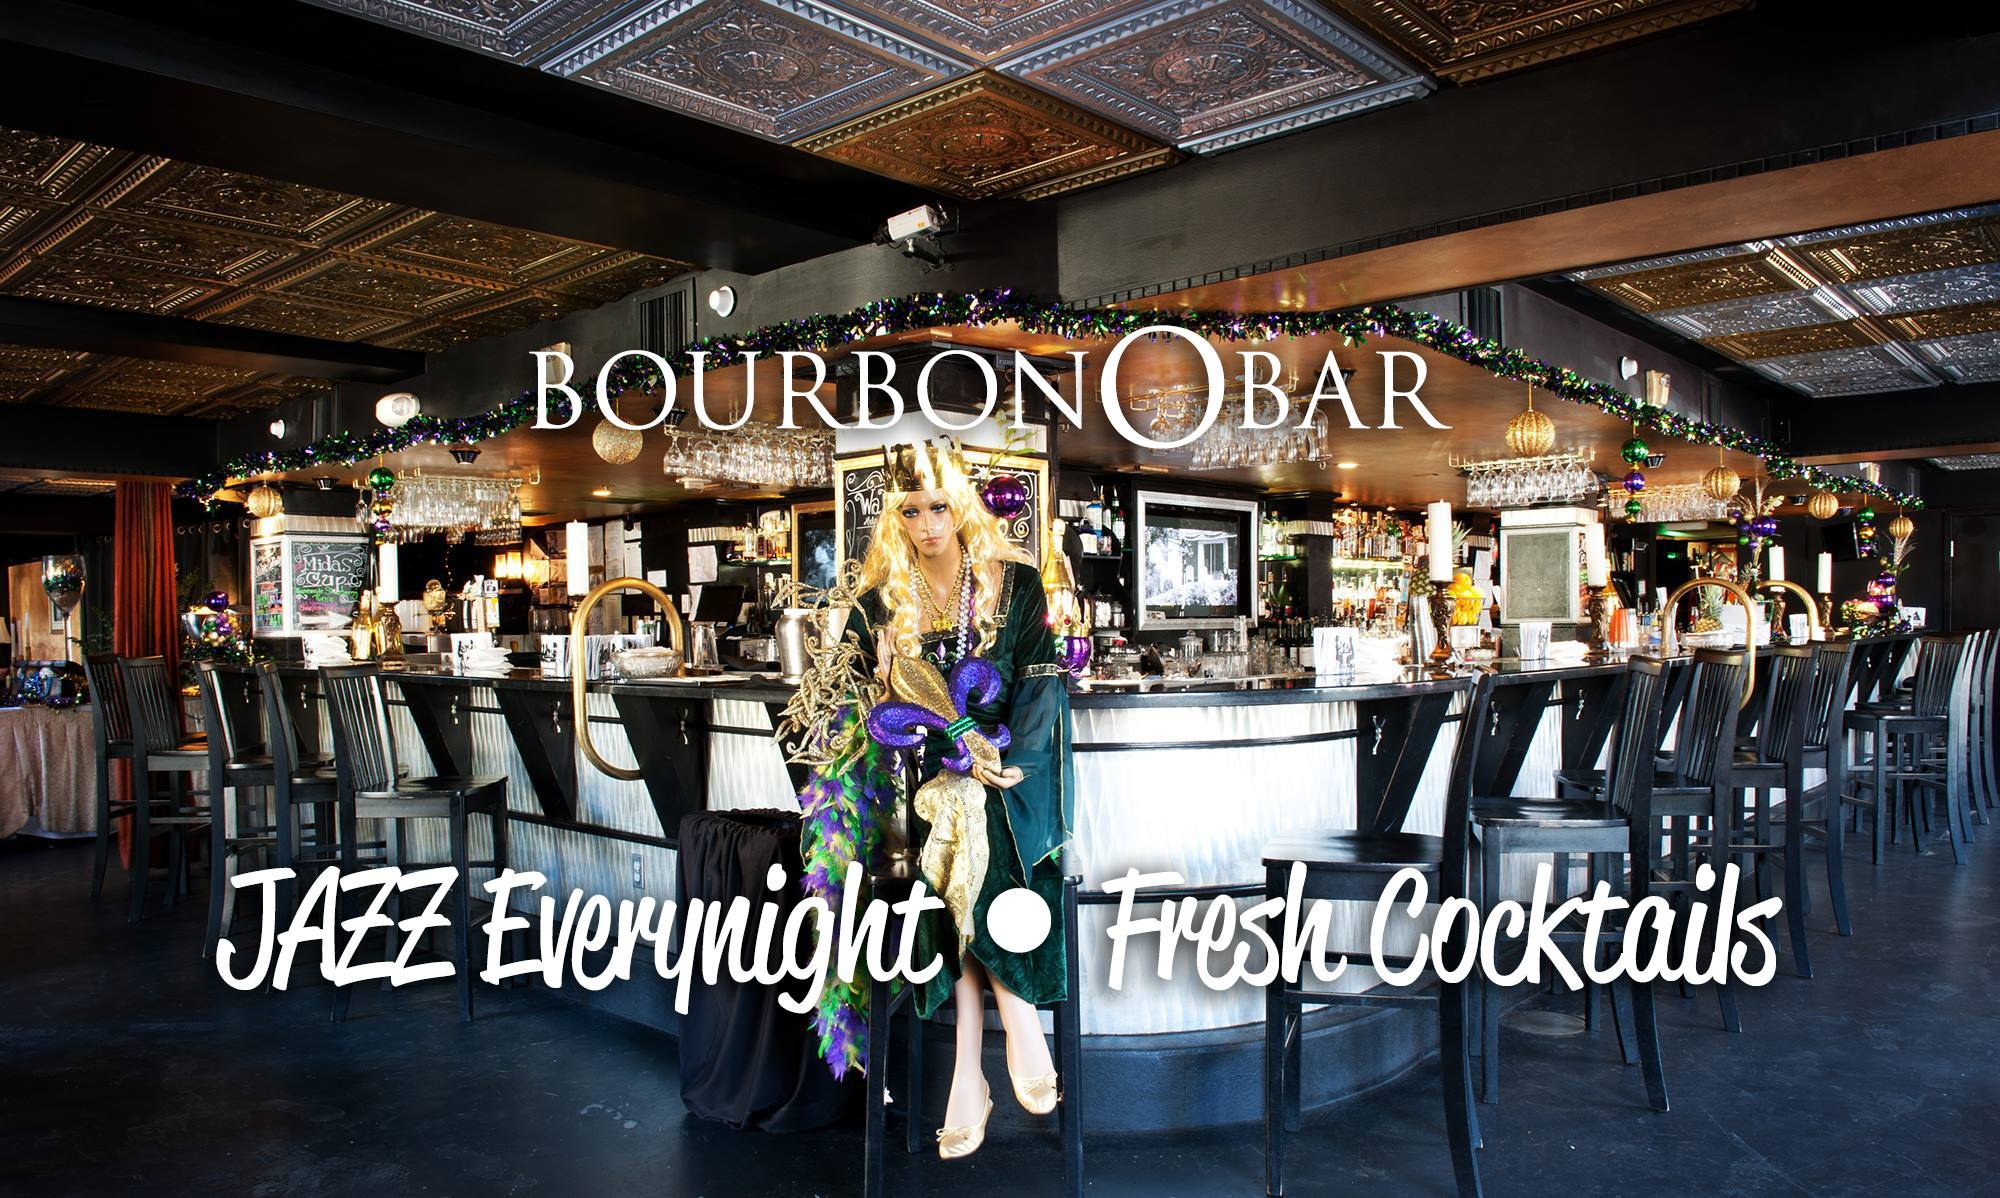 Prohibition All Stars - Bourbon O Bar at The Bourbon Orleans